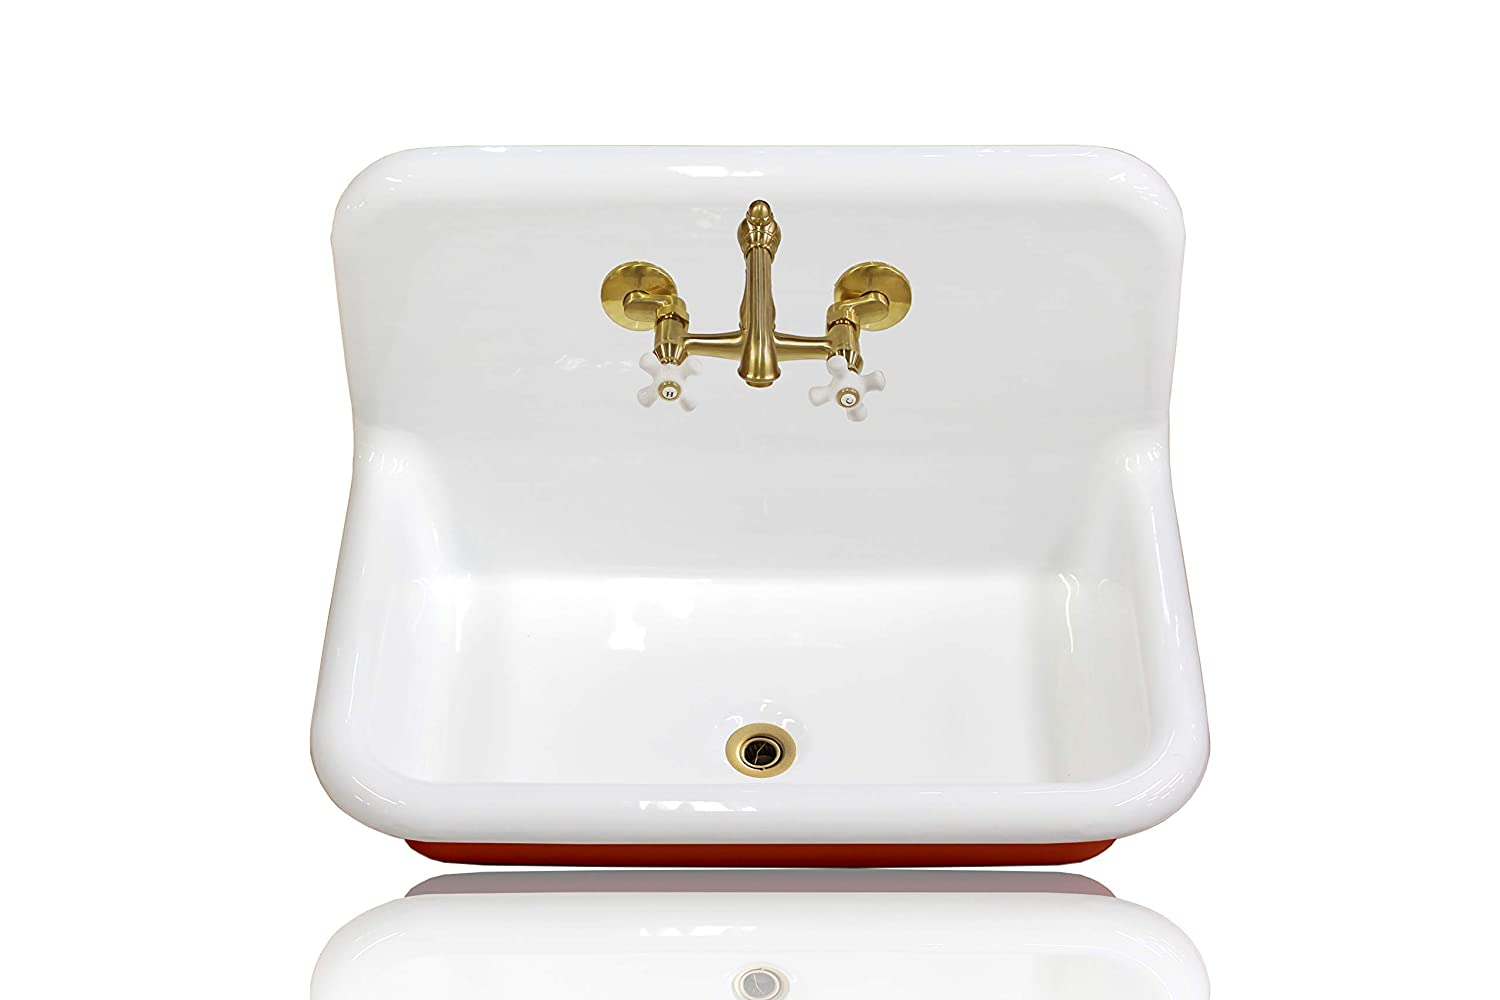 30 Antique Inspired High Back Farm Sink Cast Iron Original Porcelain Wall Mount Kitchen Sink Package Incarnadine Red Talkingbread Co Il